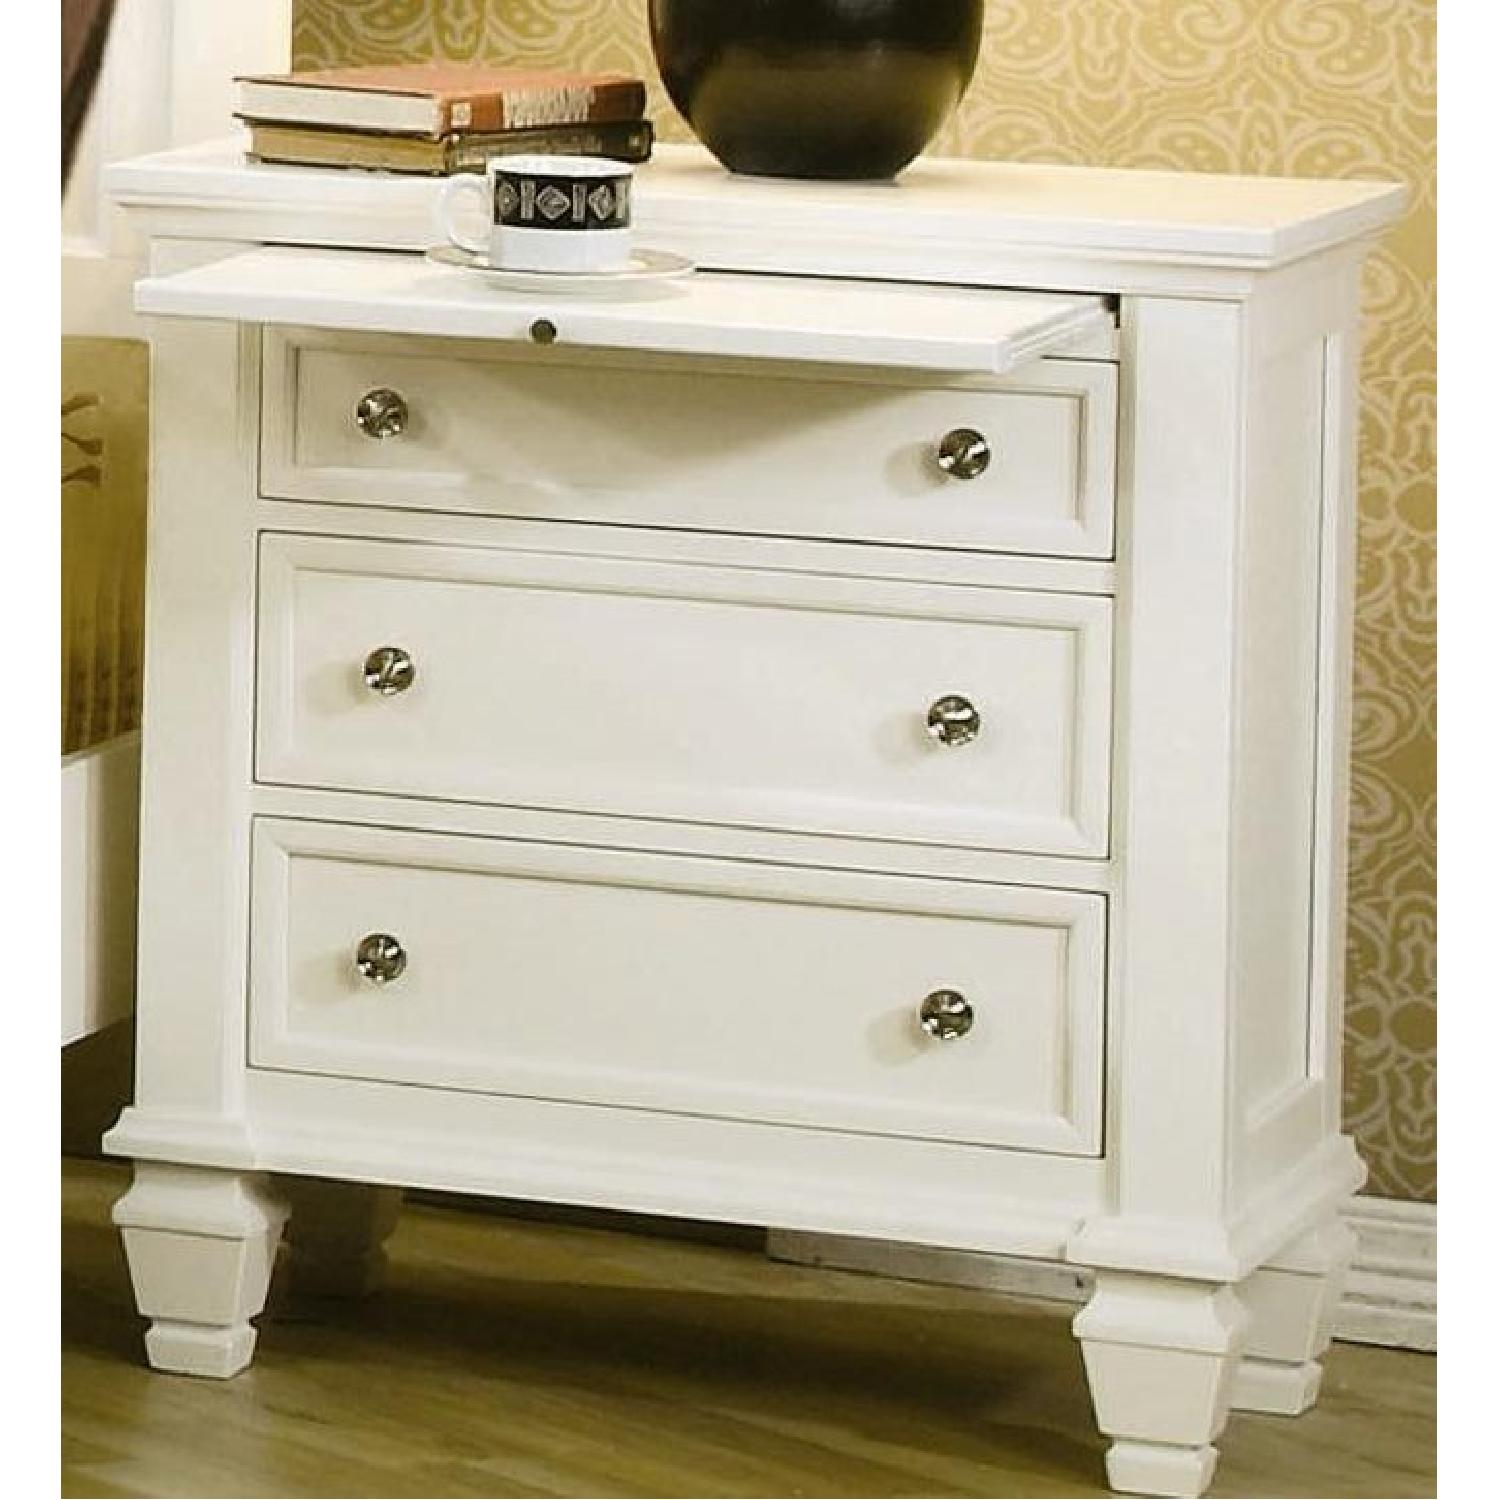 Large 3-Drawer Nightstand w/ Pull-Out Tray in White Finish - image-1